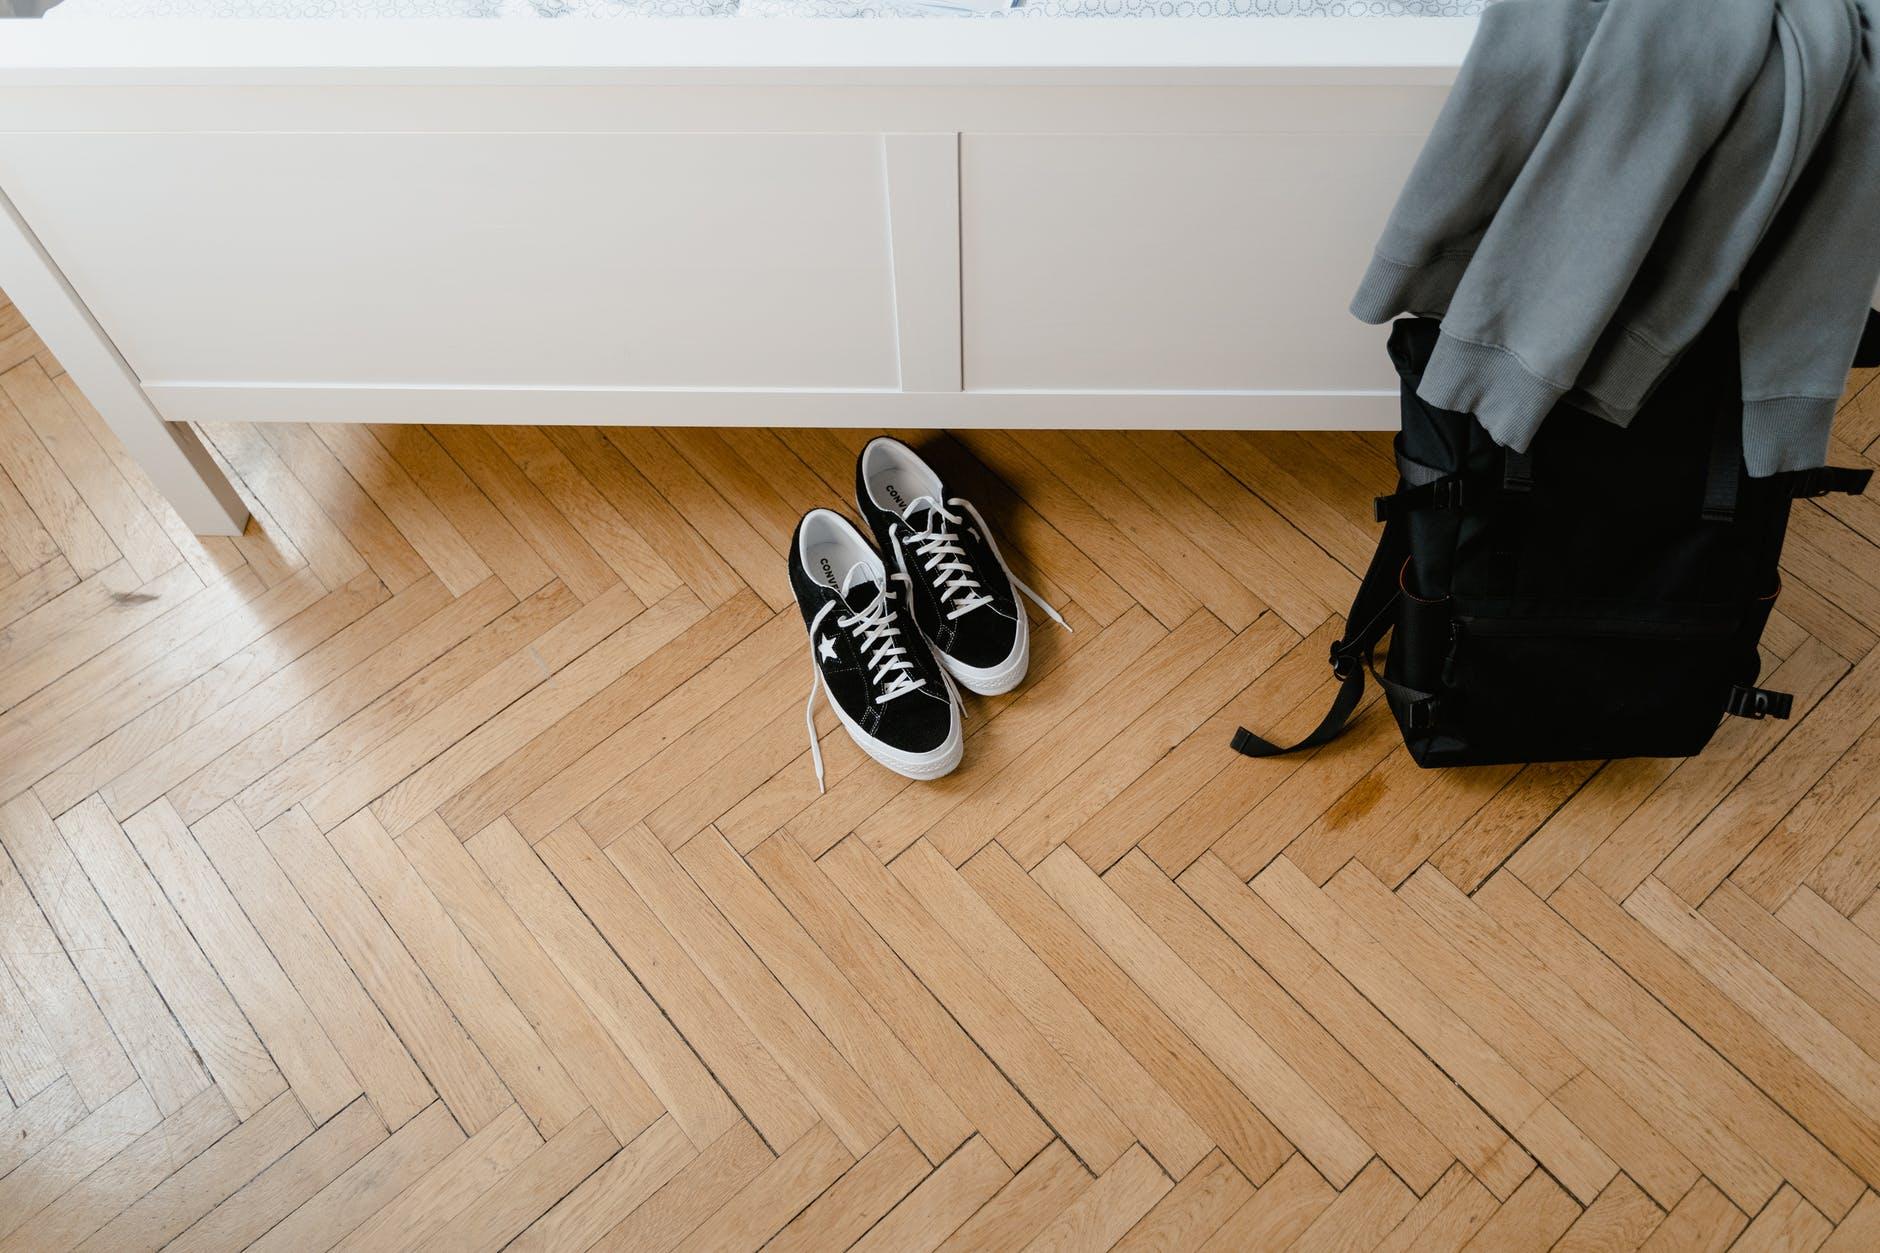 Shoes and backpack on light parquet flooring